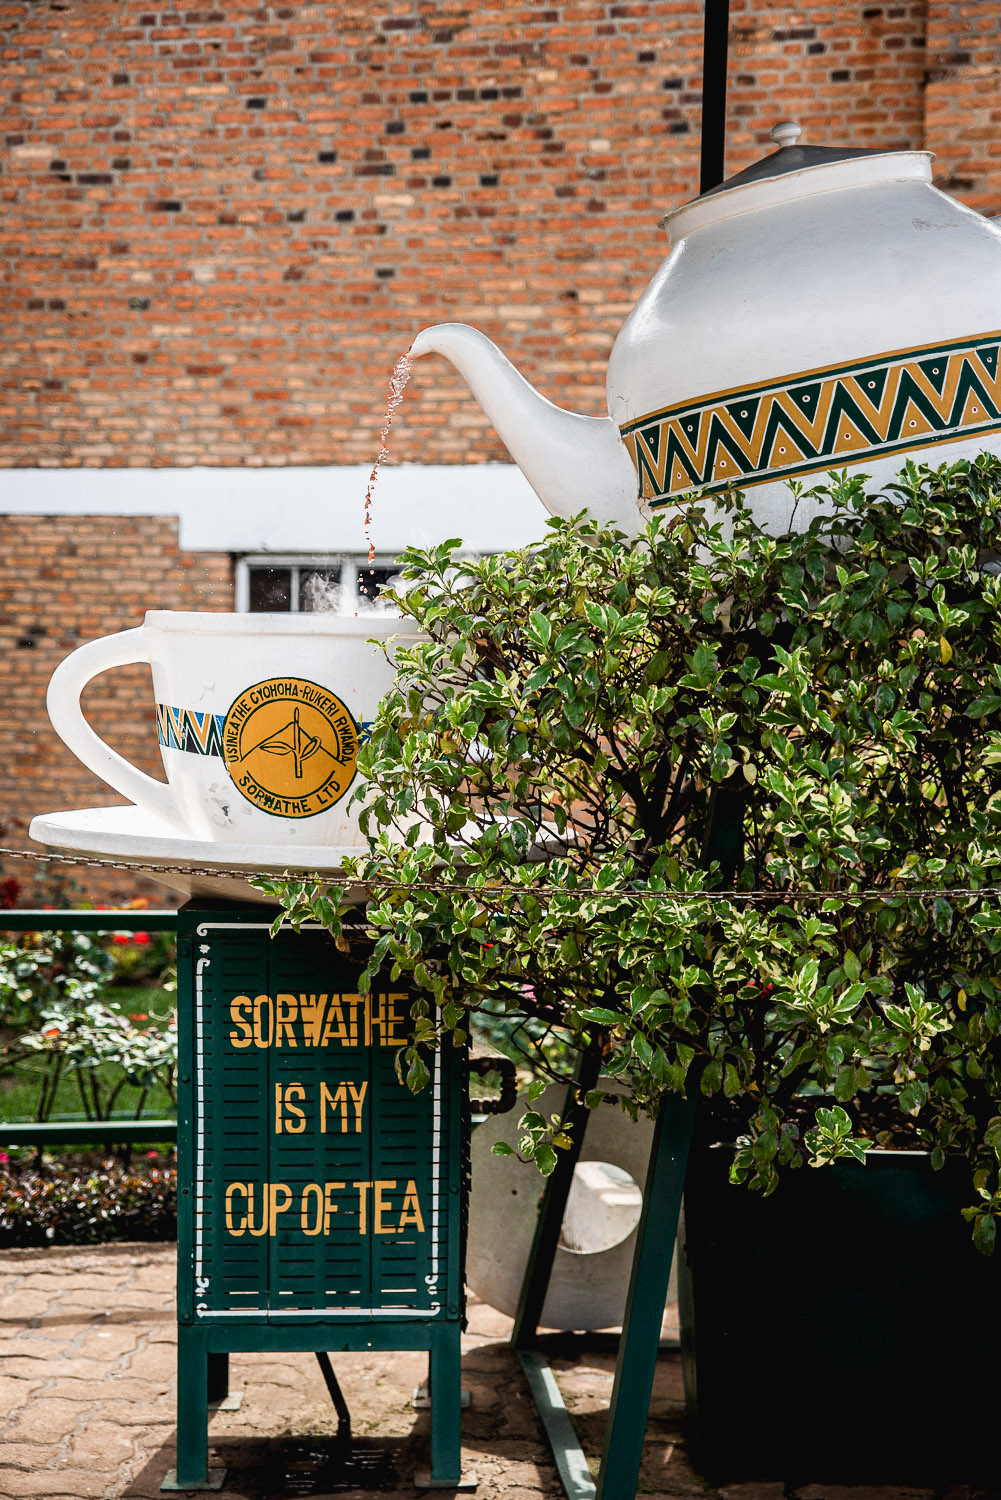 Sorwathe Tea Factory and Estate are located in Kinihira, northern Rwanda